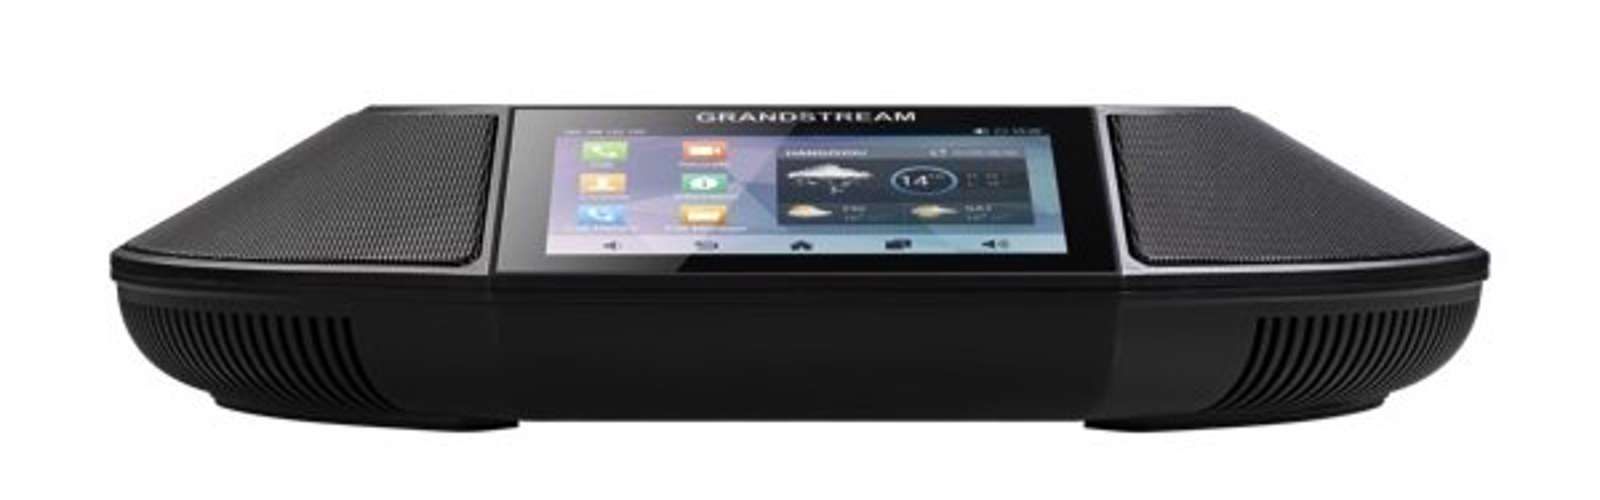 Grandstream GAC2500 Conference Phone Review